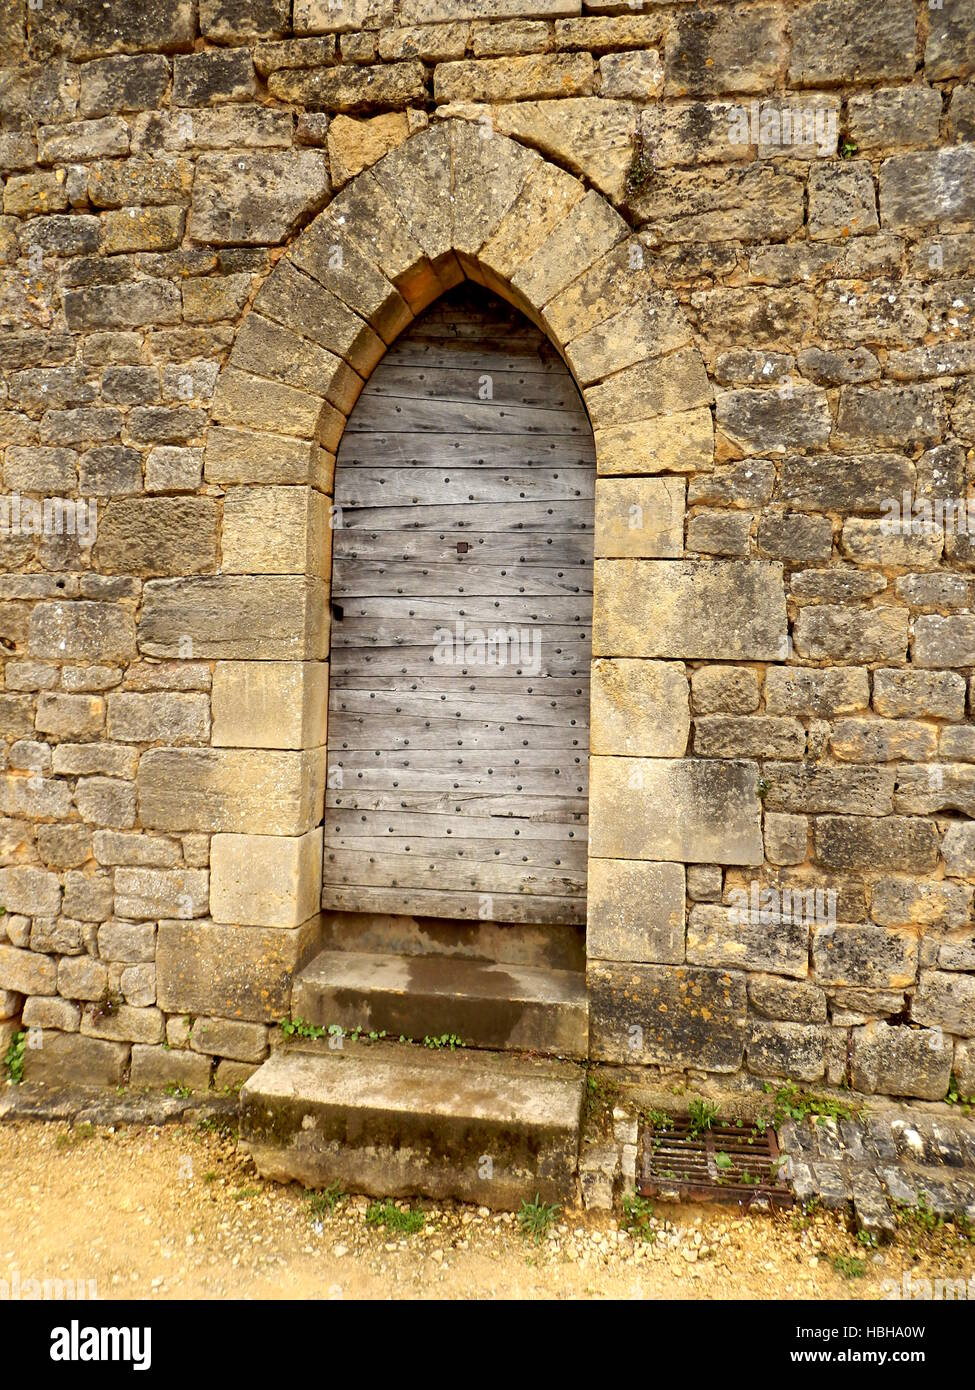 Medieval Arched Doors - Stock Image